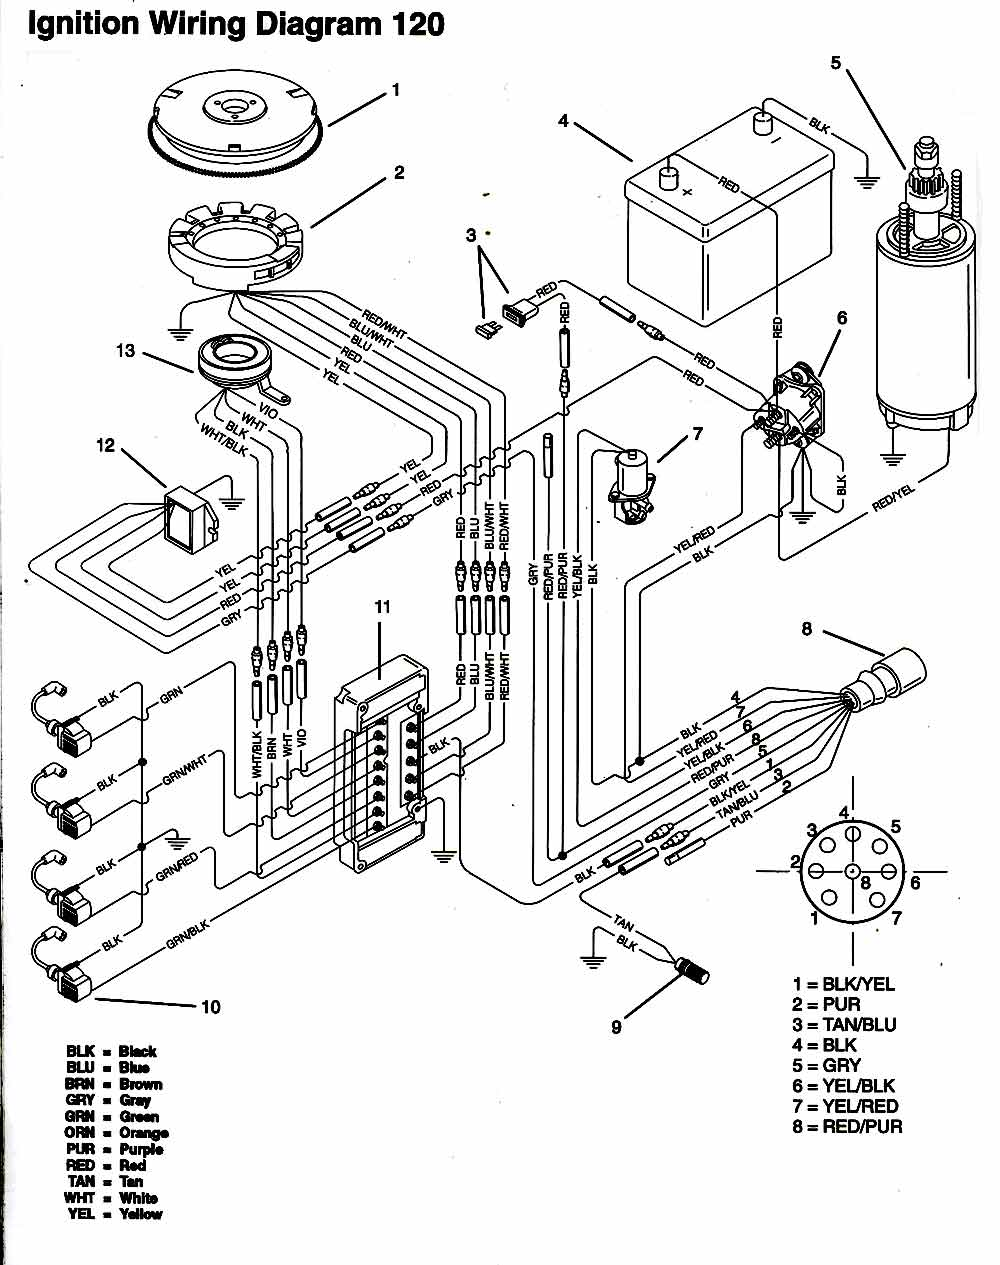 chrysler 15 outboard motor diagram